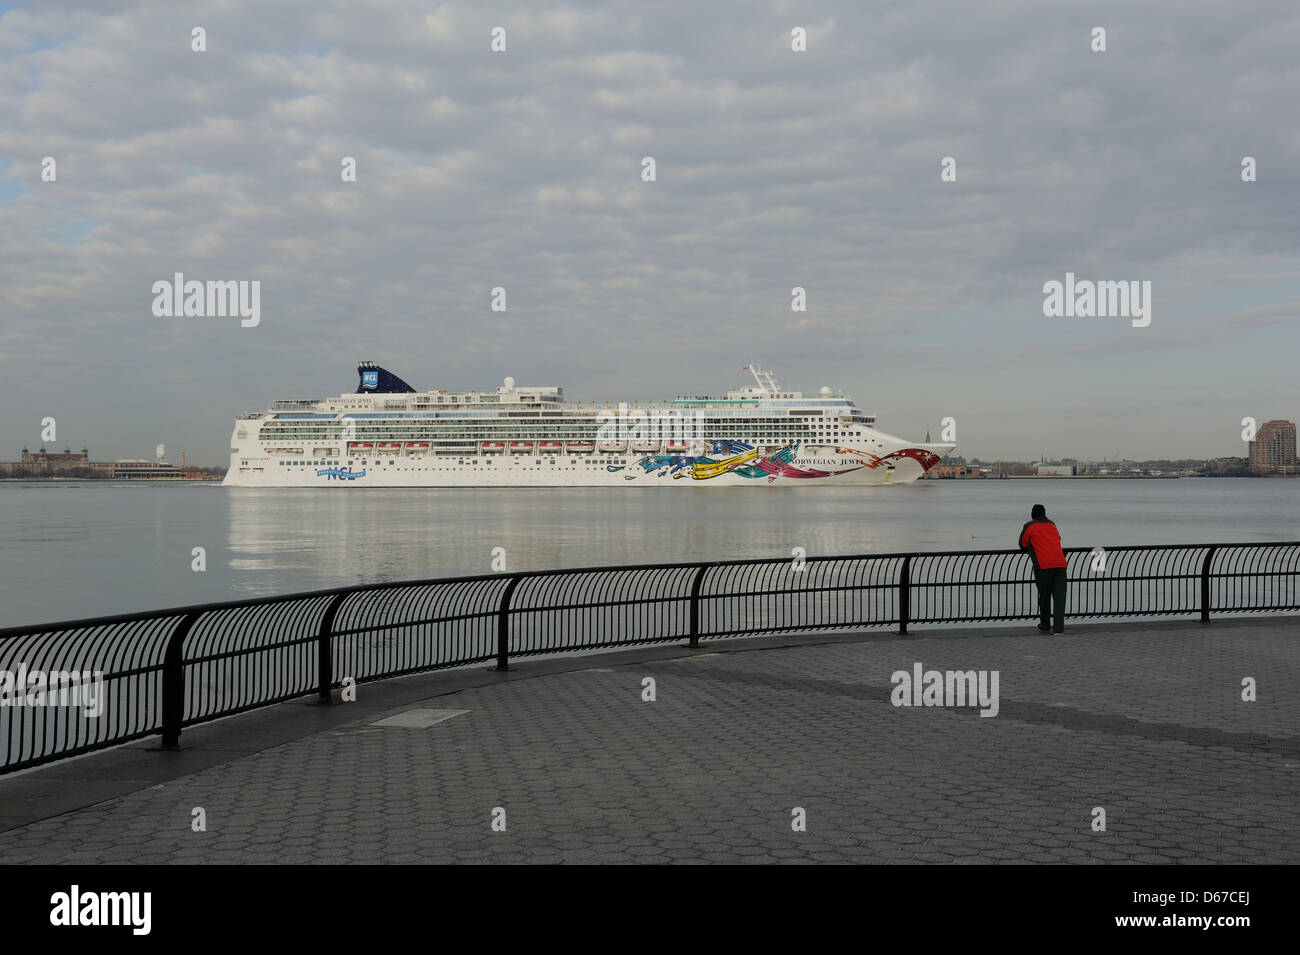 The Norwegian Jewel steaming up the Hudson River past the Battery Park City esplanade on the morning of April 14, - Stock Image